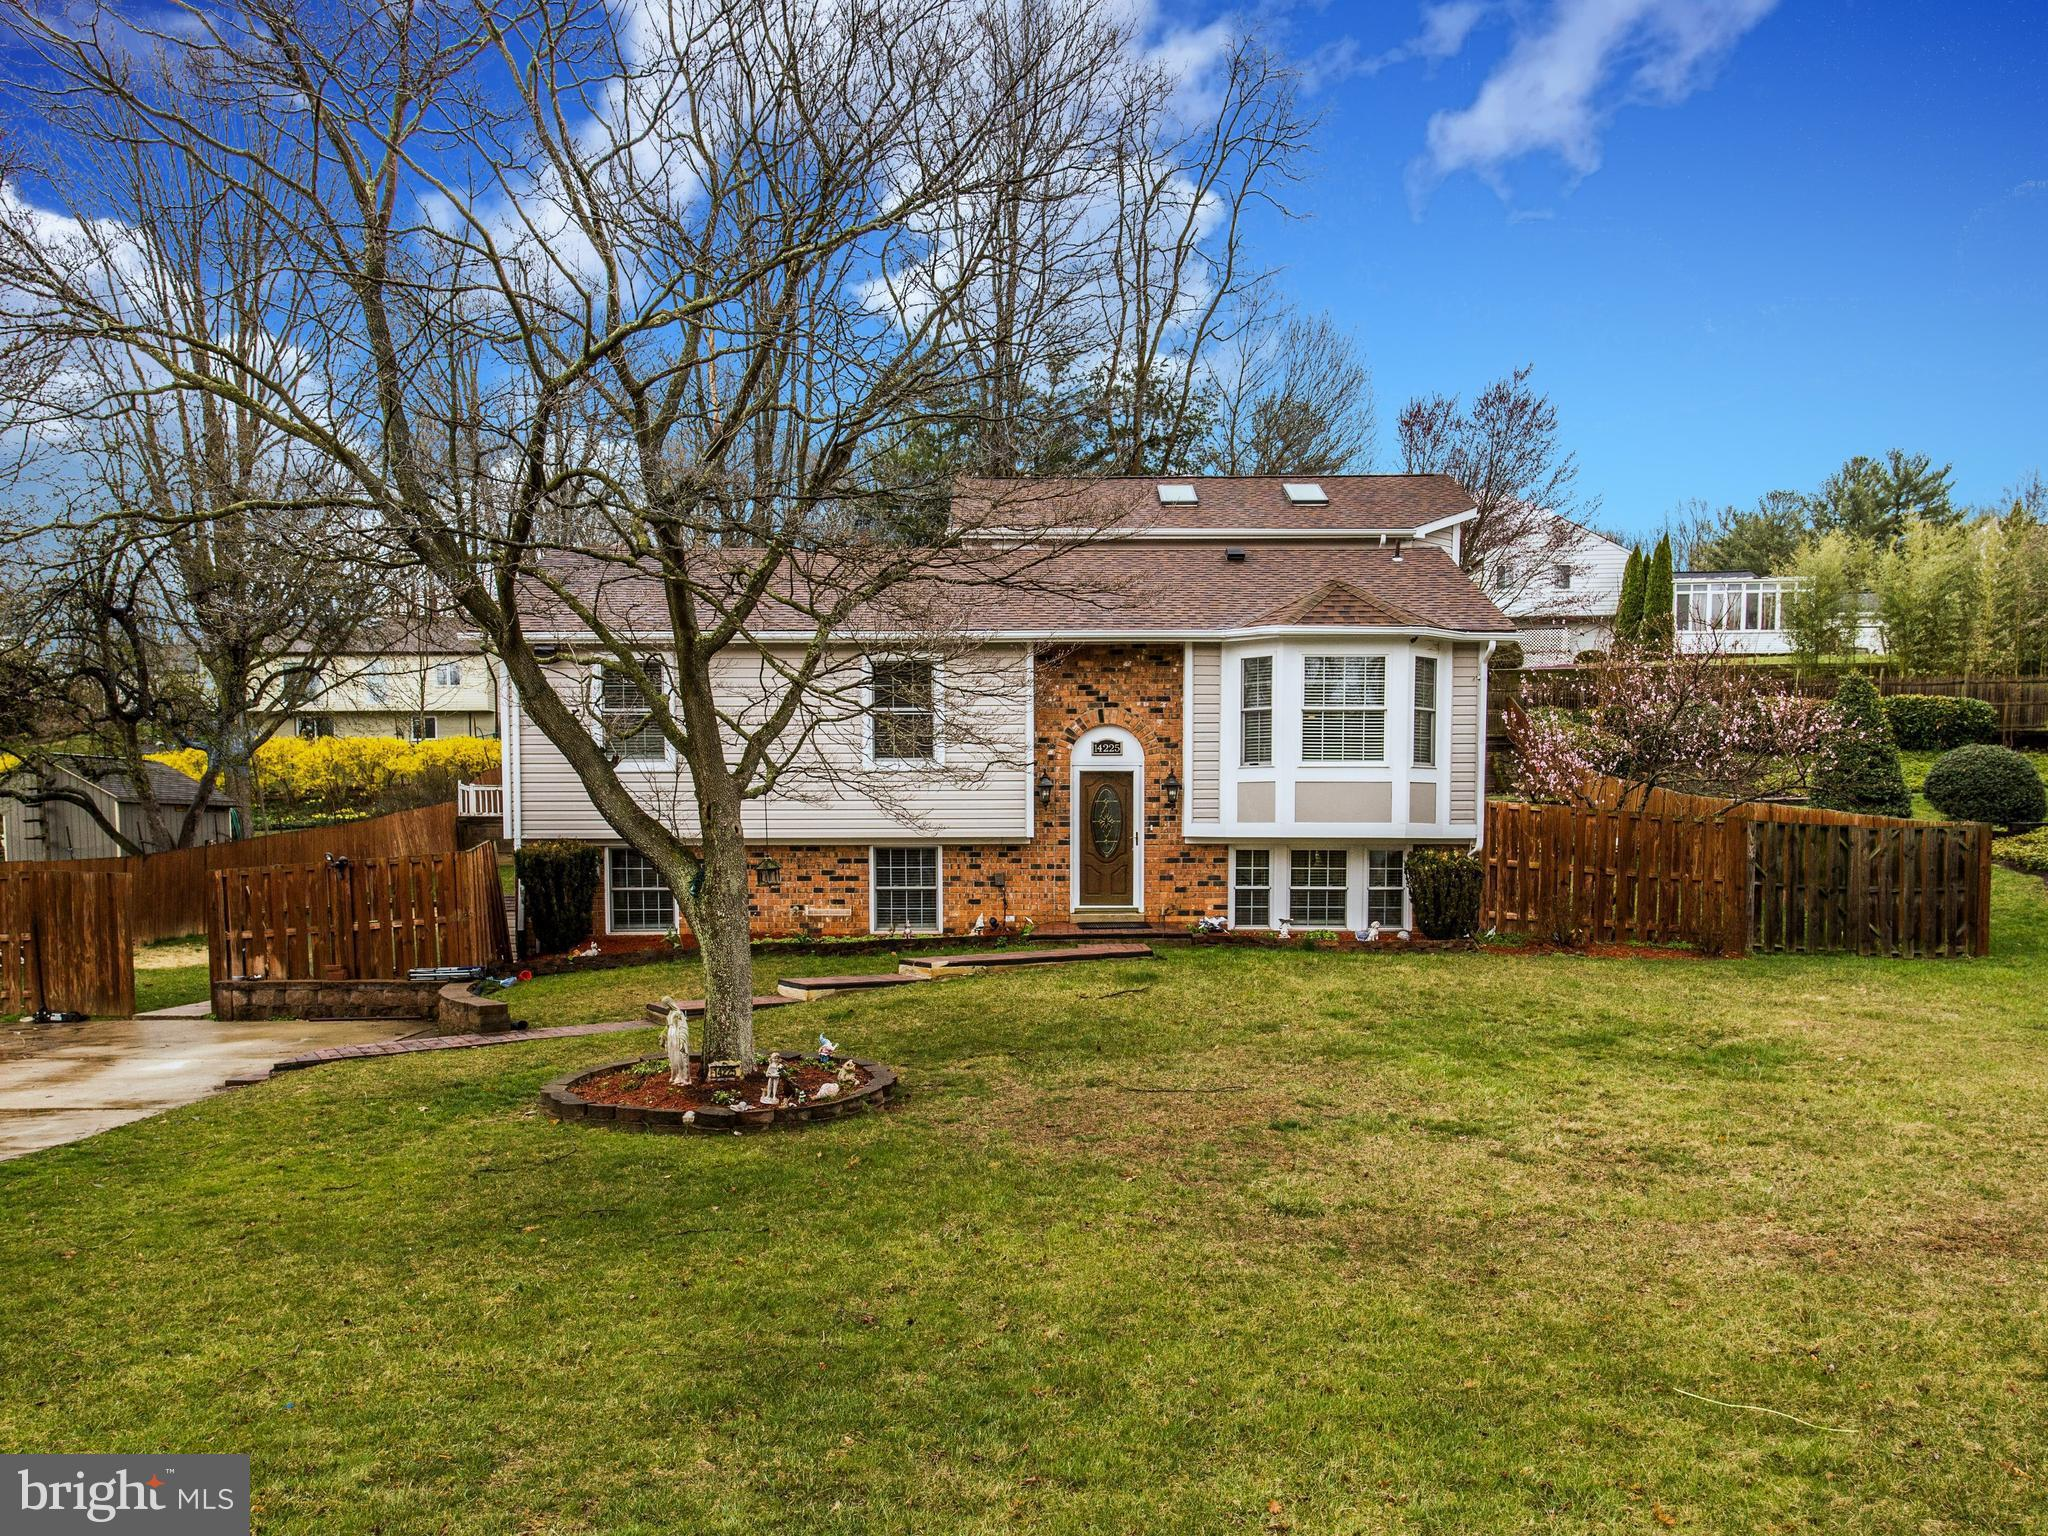 14225 PICCADILLY ROAD, SILVER SPRING, MD 20906